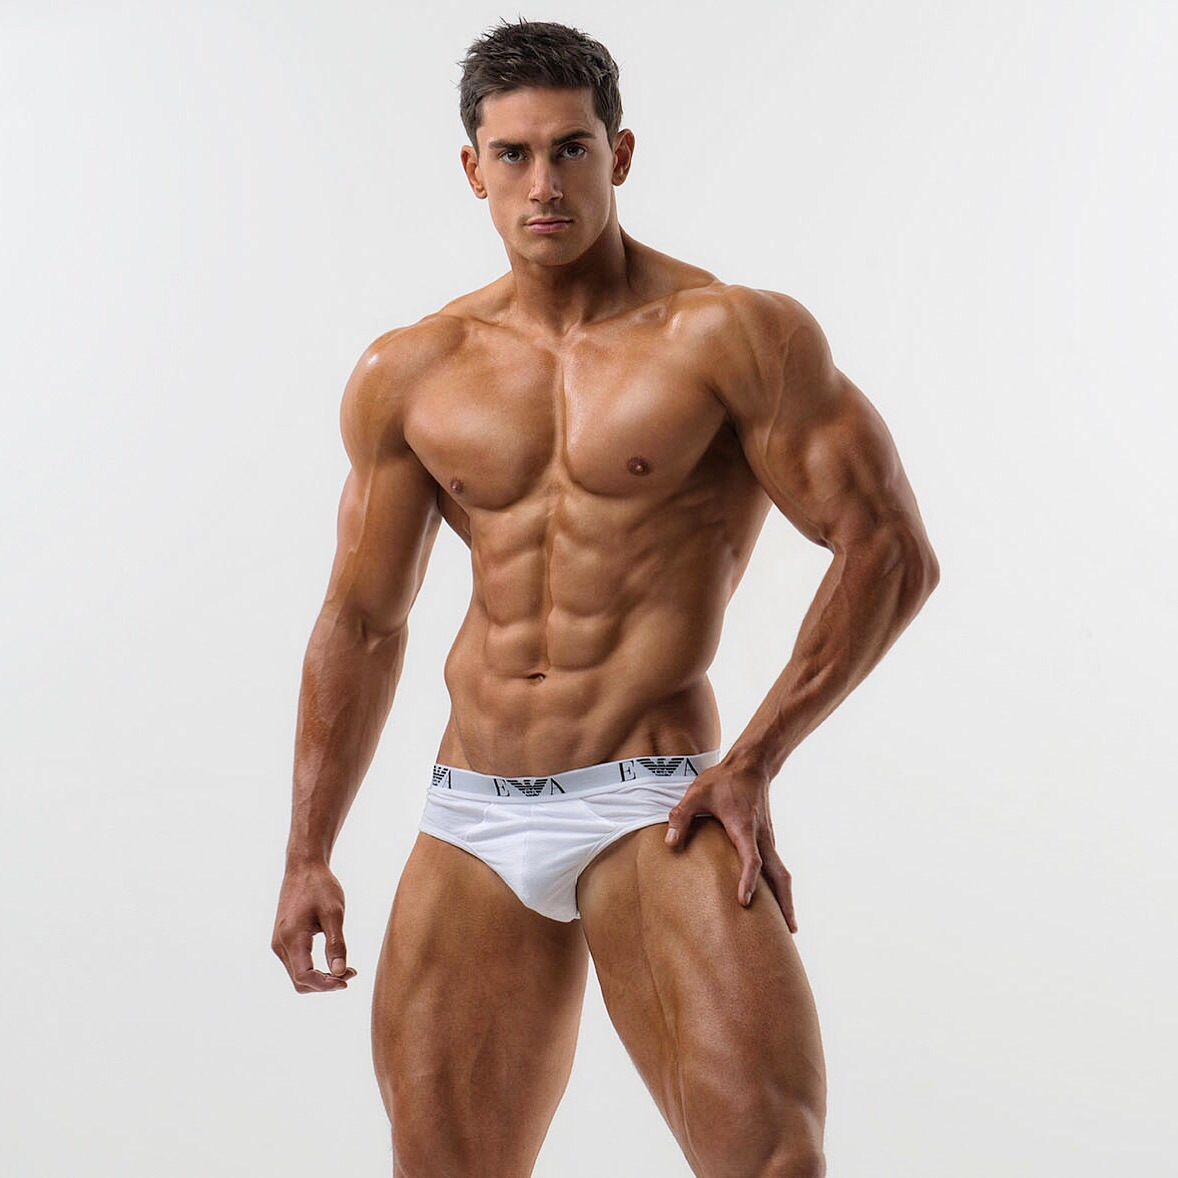 Martin S Sydneys' fitness model during his Armani underwear campaign